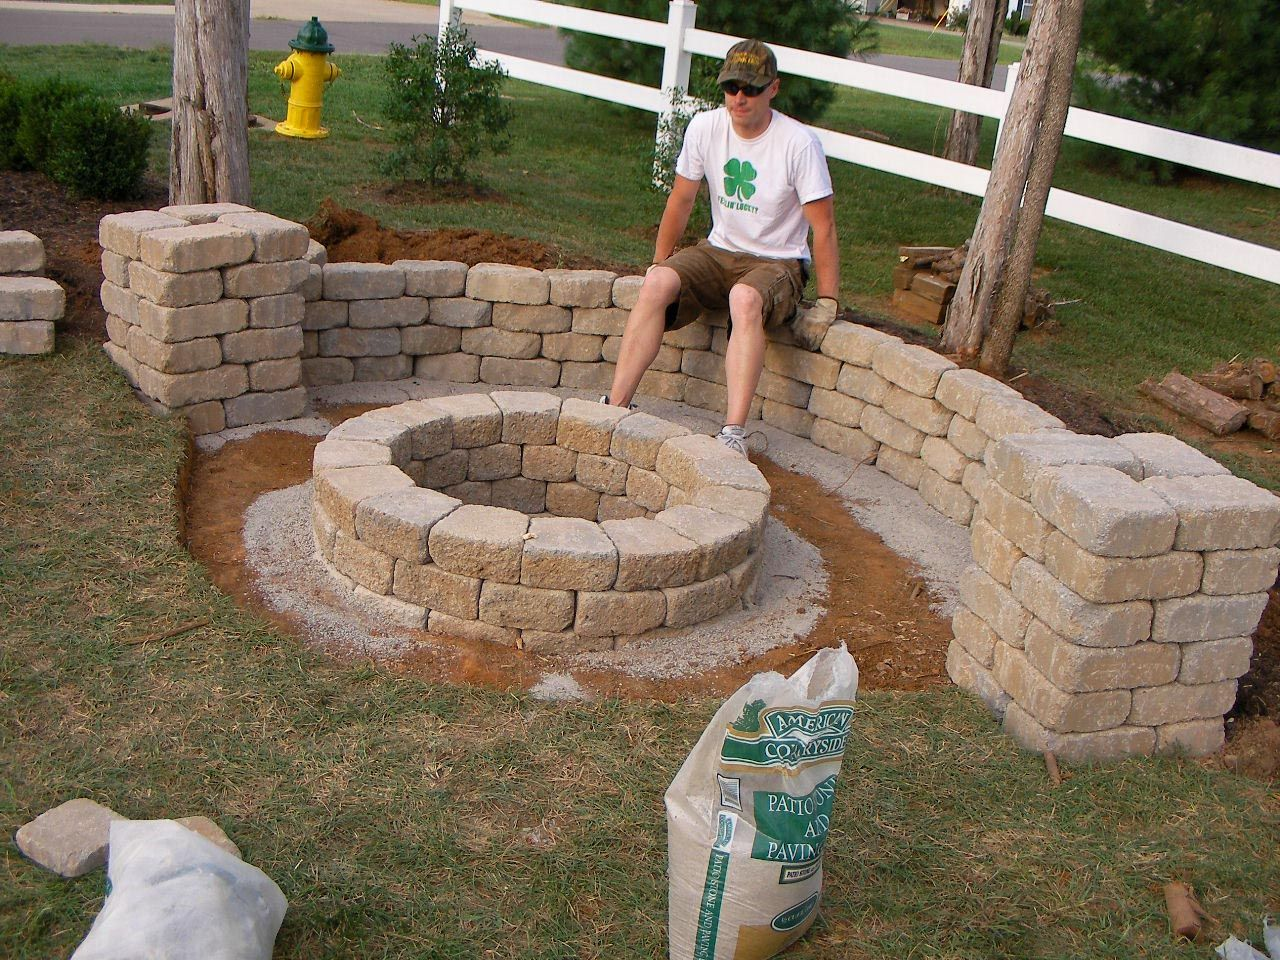 easy backyard fire pit designs ? | pinterest - Patio Designs With Fire Pit Pictures